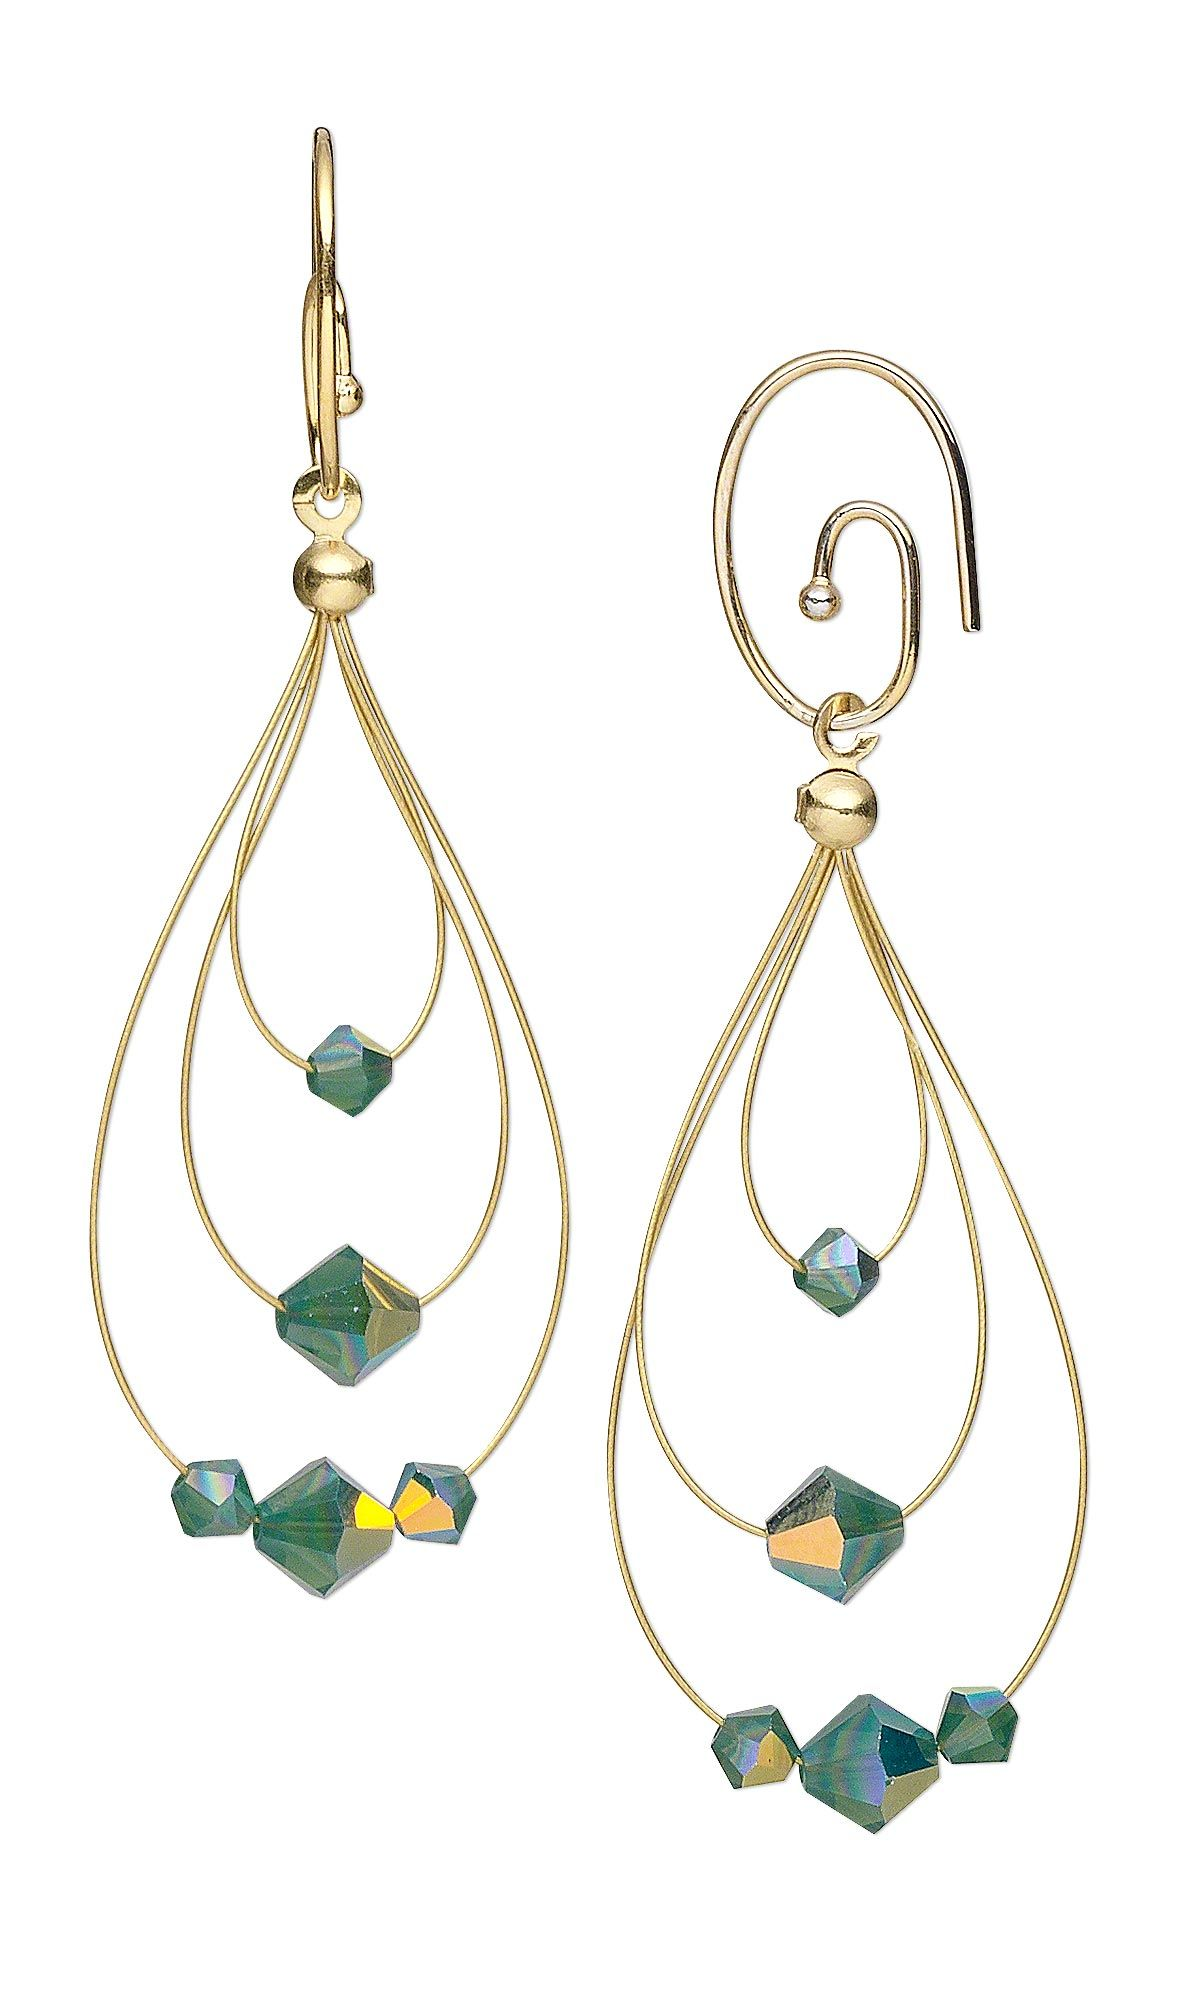 Jewelry Design - Earrings with Swarovski Crystal Beads and Accu-Flex ...